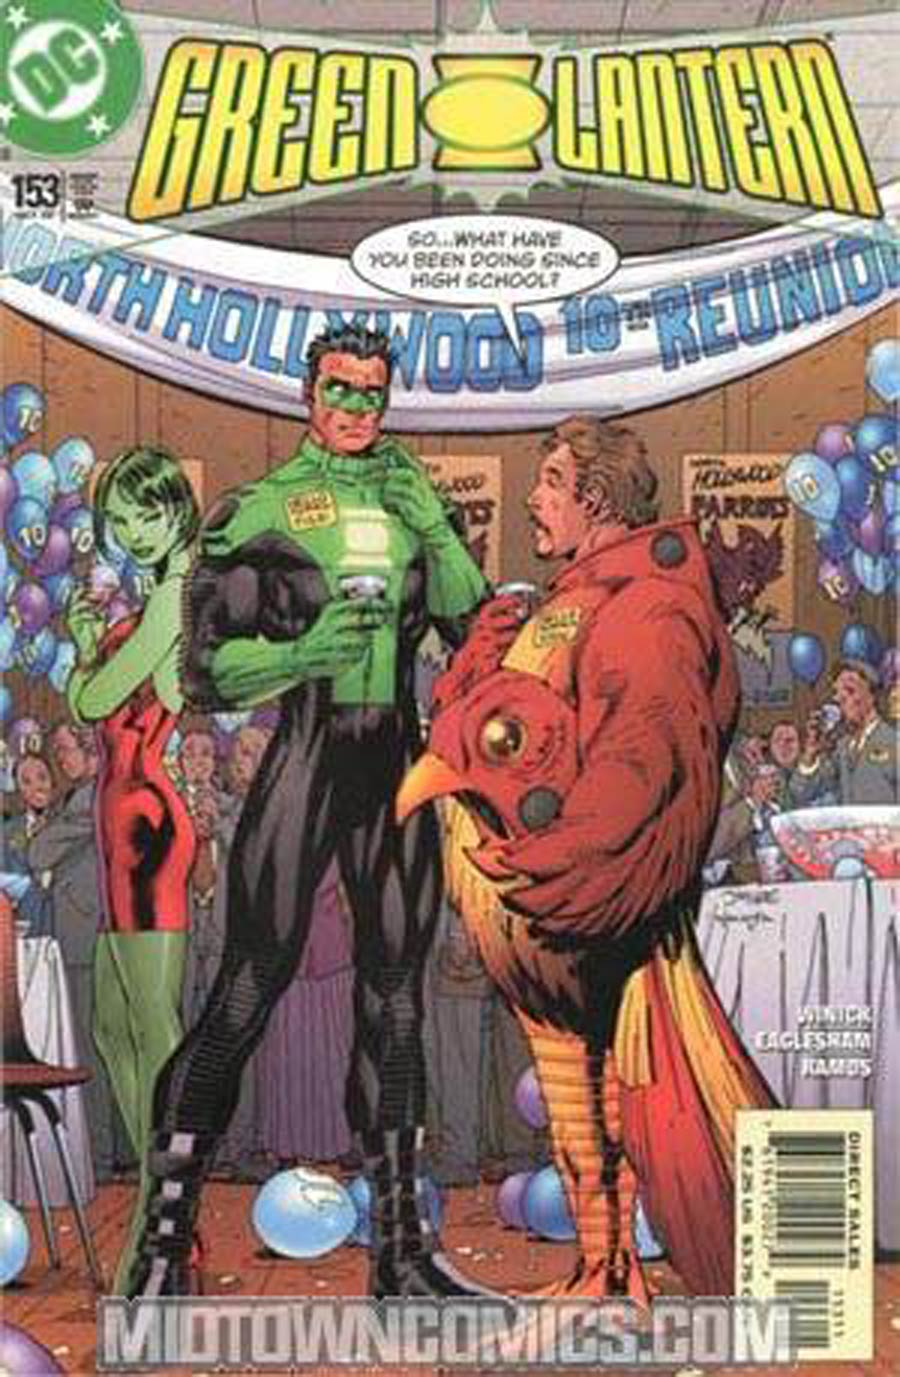 Green Lantern Vol 3 #153 Cover A